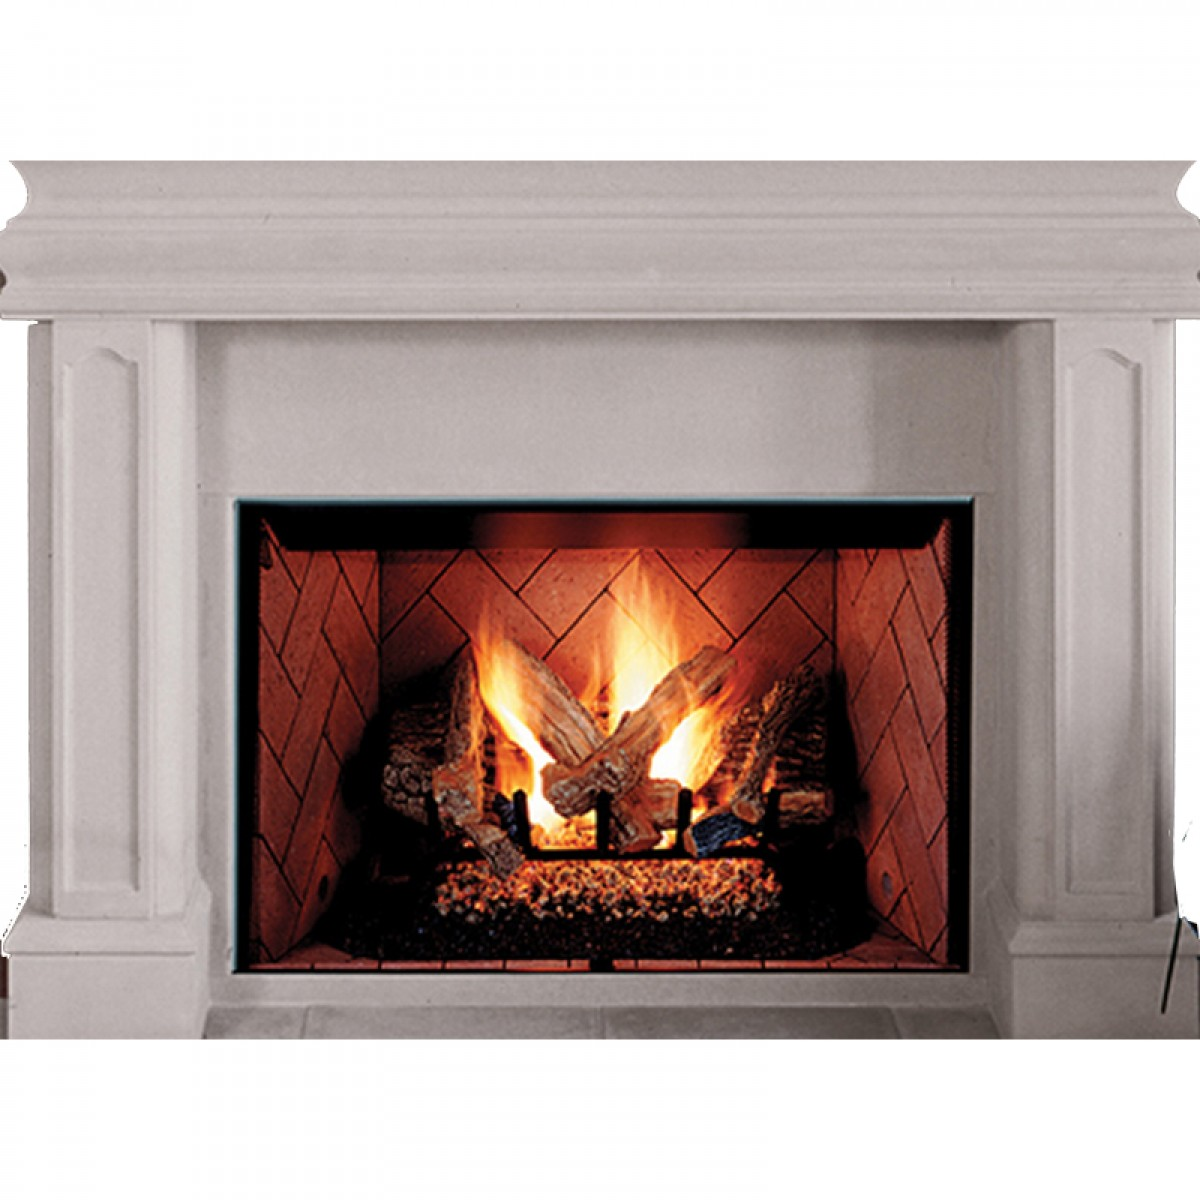 gas b fireplaces can enjoy anywhere vent you traditional a products learn en fireplace almost how your home regency in